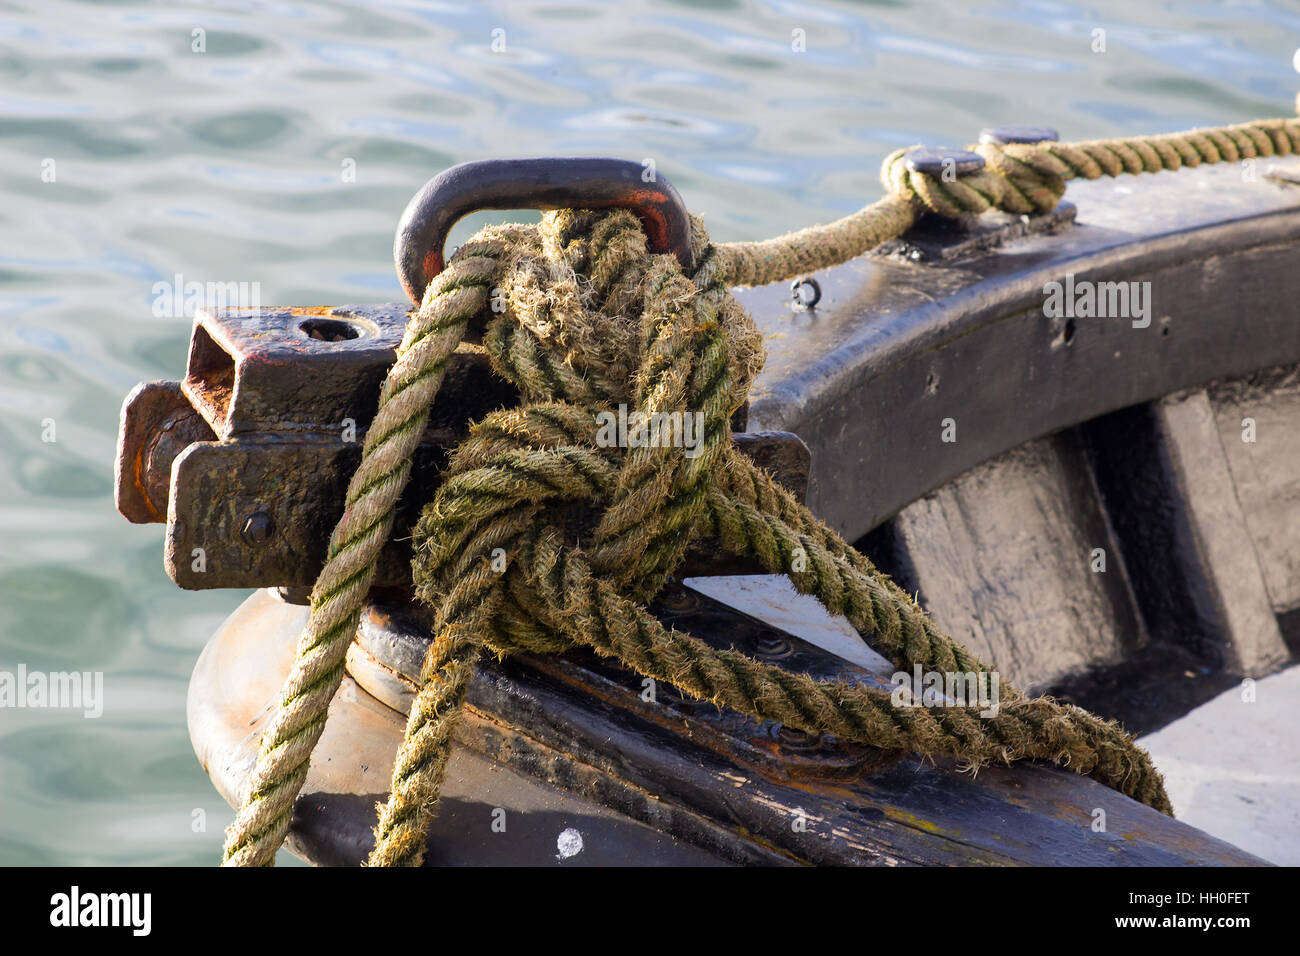 Knotted rope around a mooring bollard on a small trawler bow - Stock Image